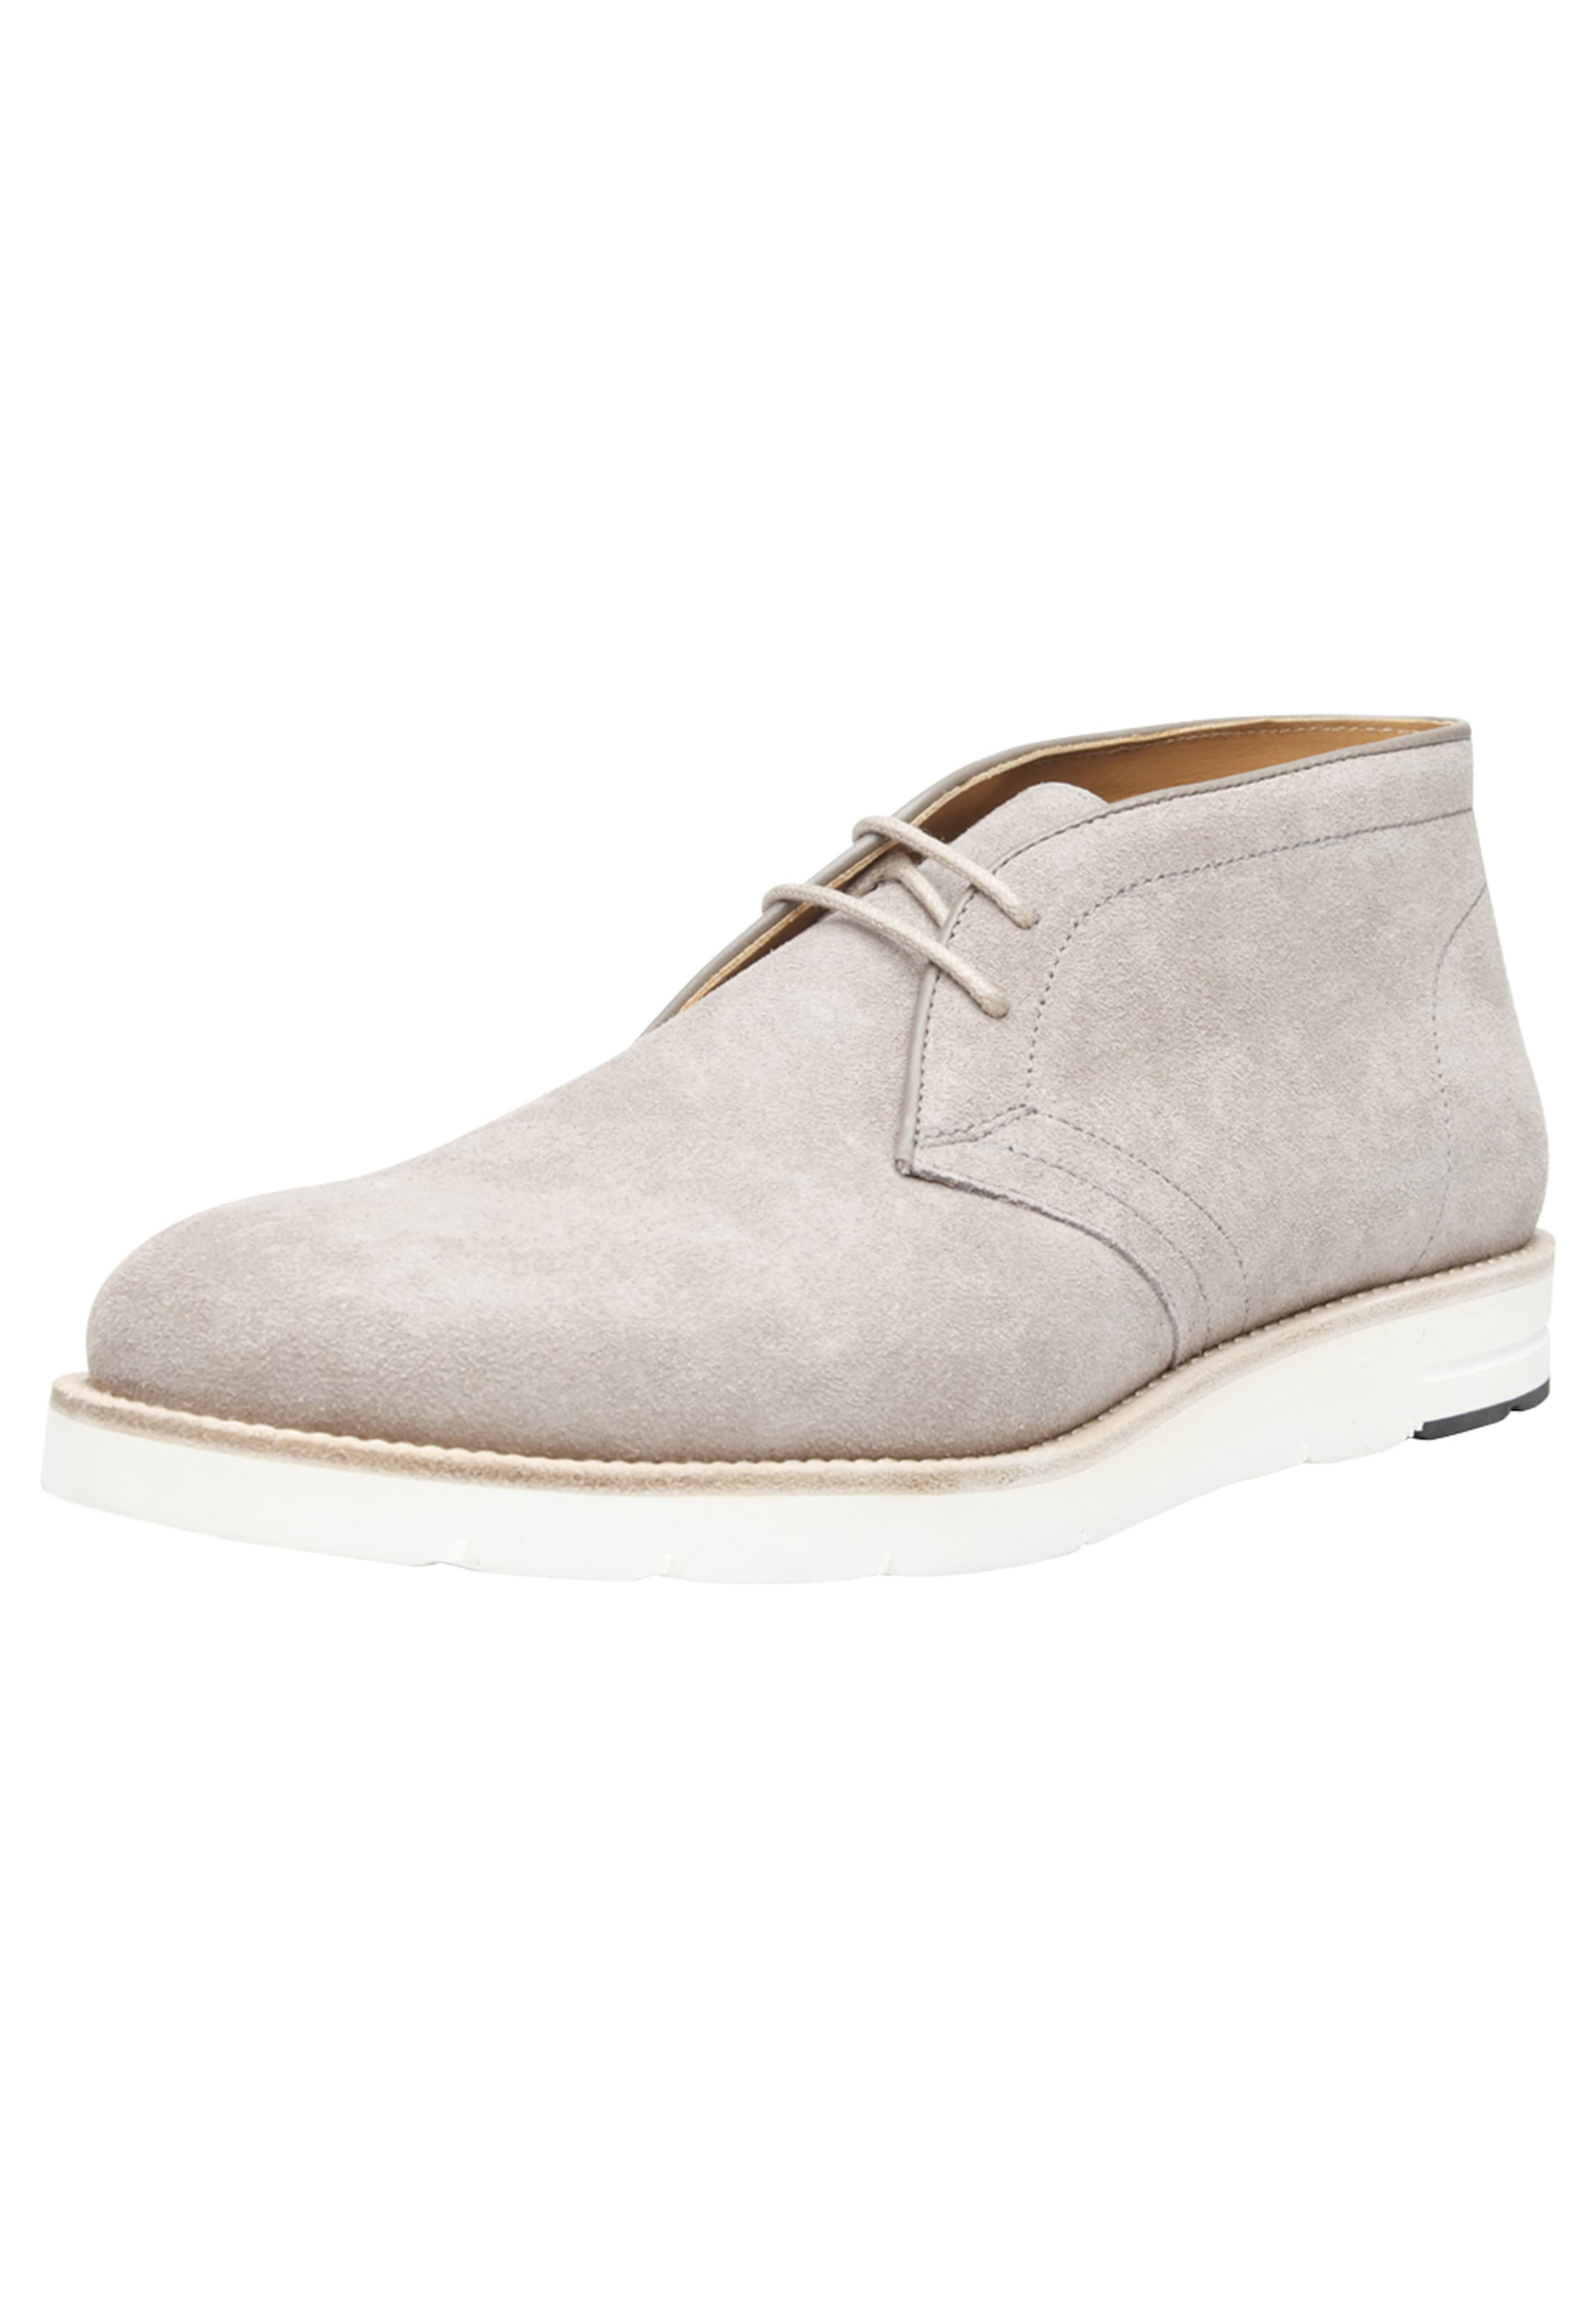 SHOEPASSION | Halbschuhe  No. 352 UL